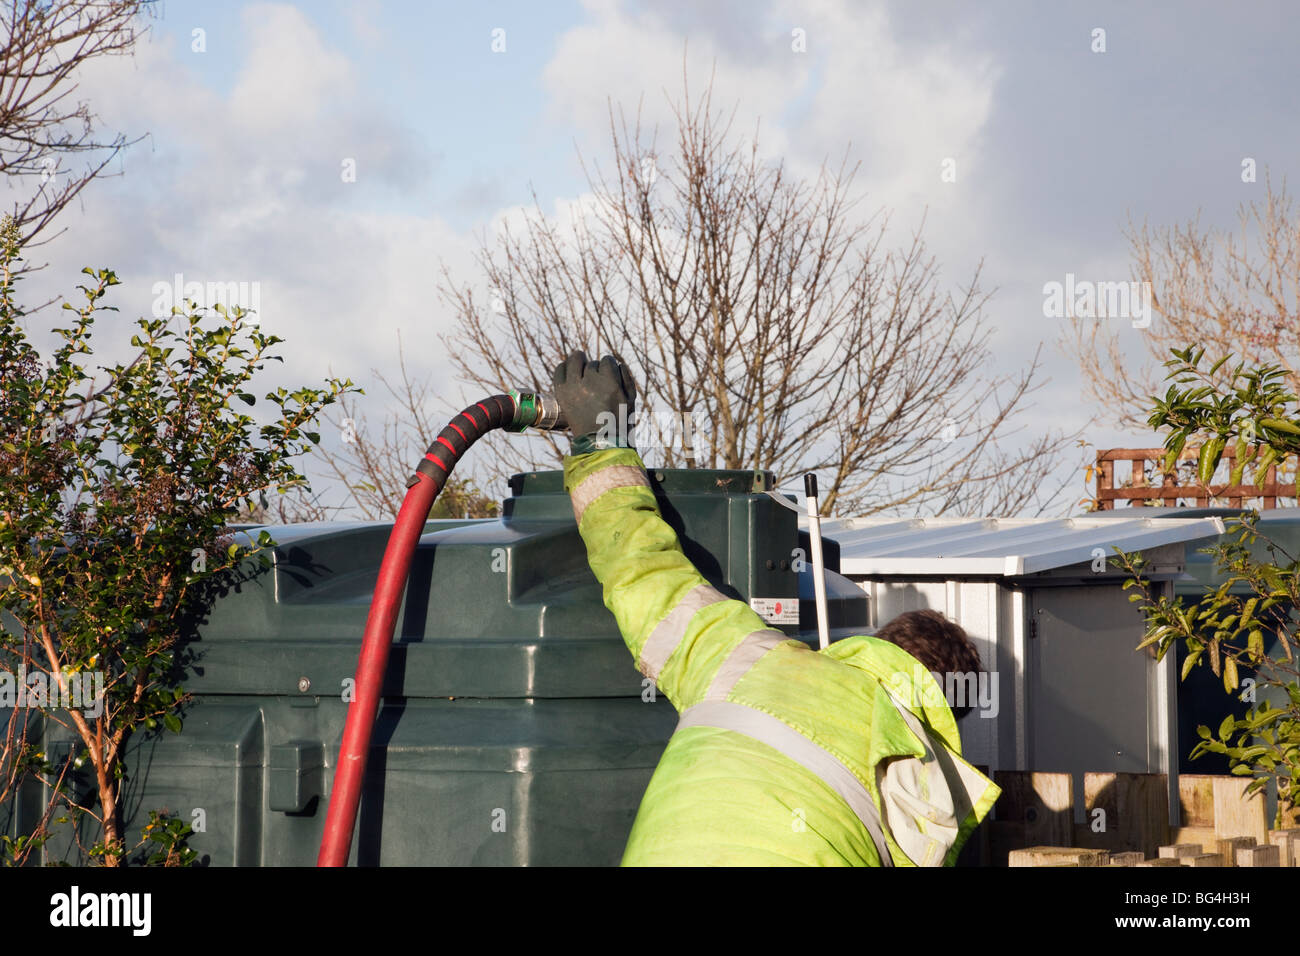 Man filling a domestic oil tank with red supply pipe and nozzle. UK, Britain - Stock Image